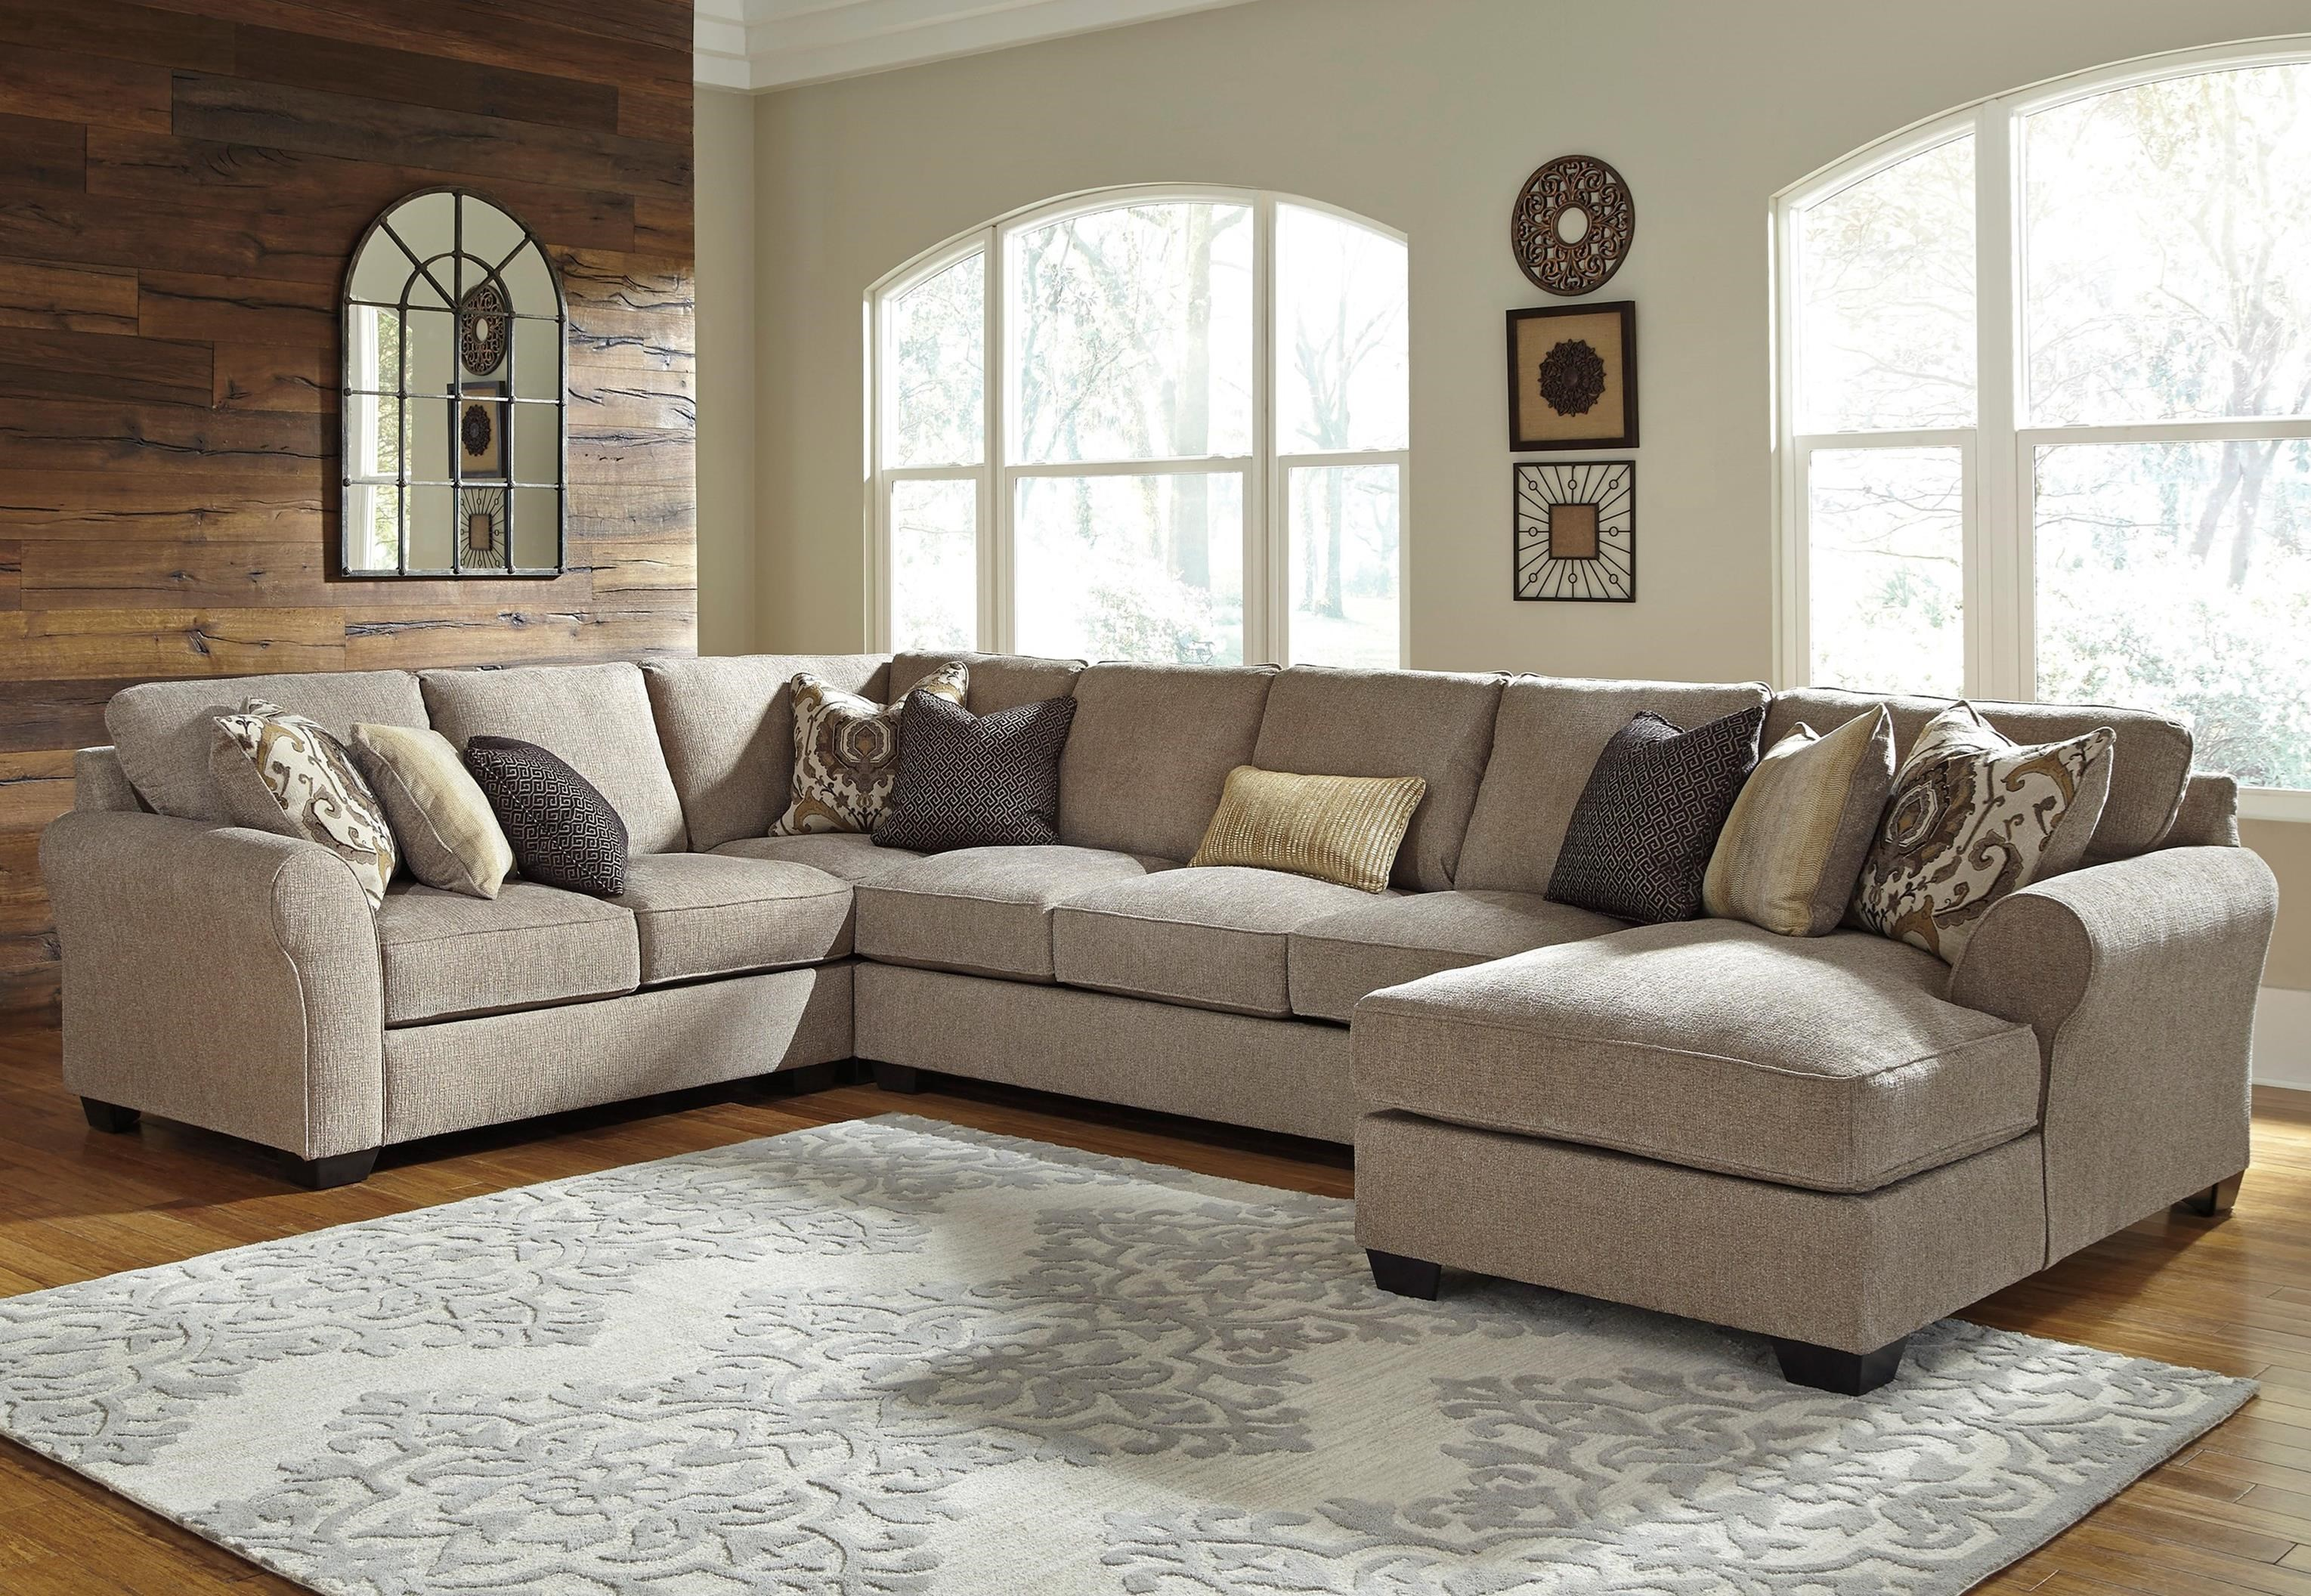 Parnell 4-Piece Sectional with Chaise by Trendz at Ruby Gordon Home